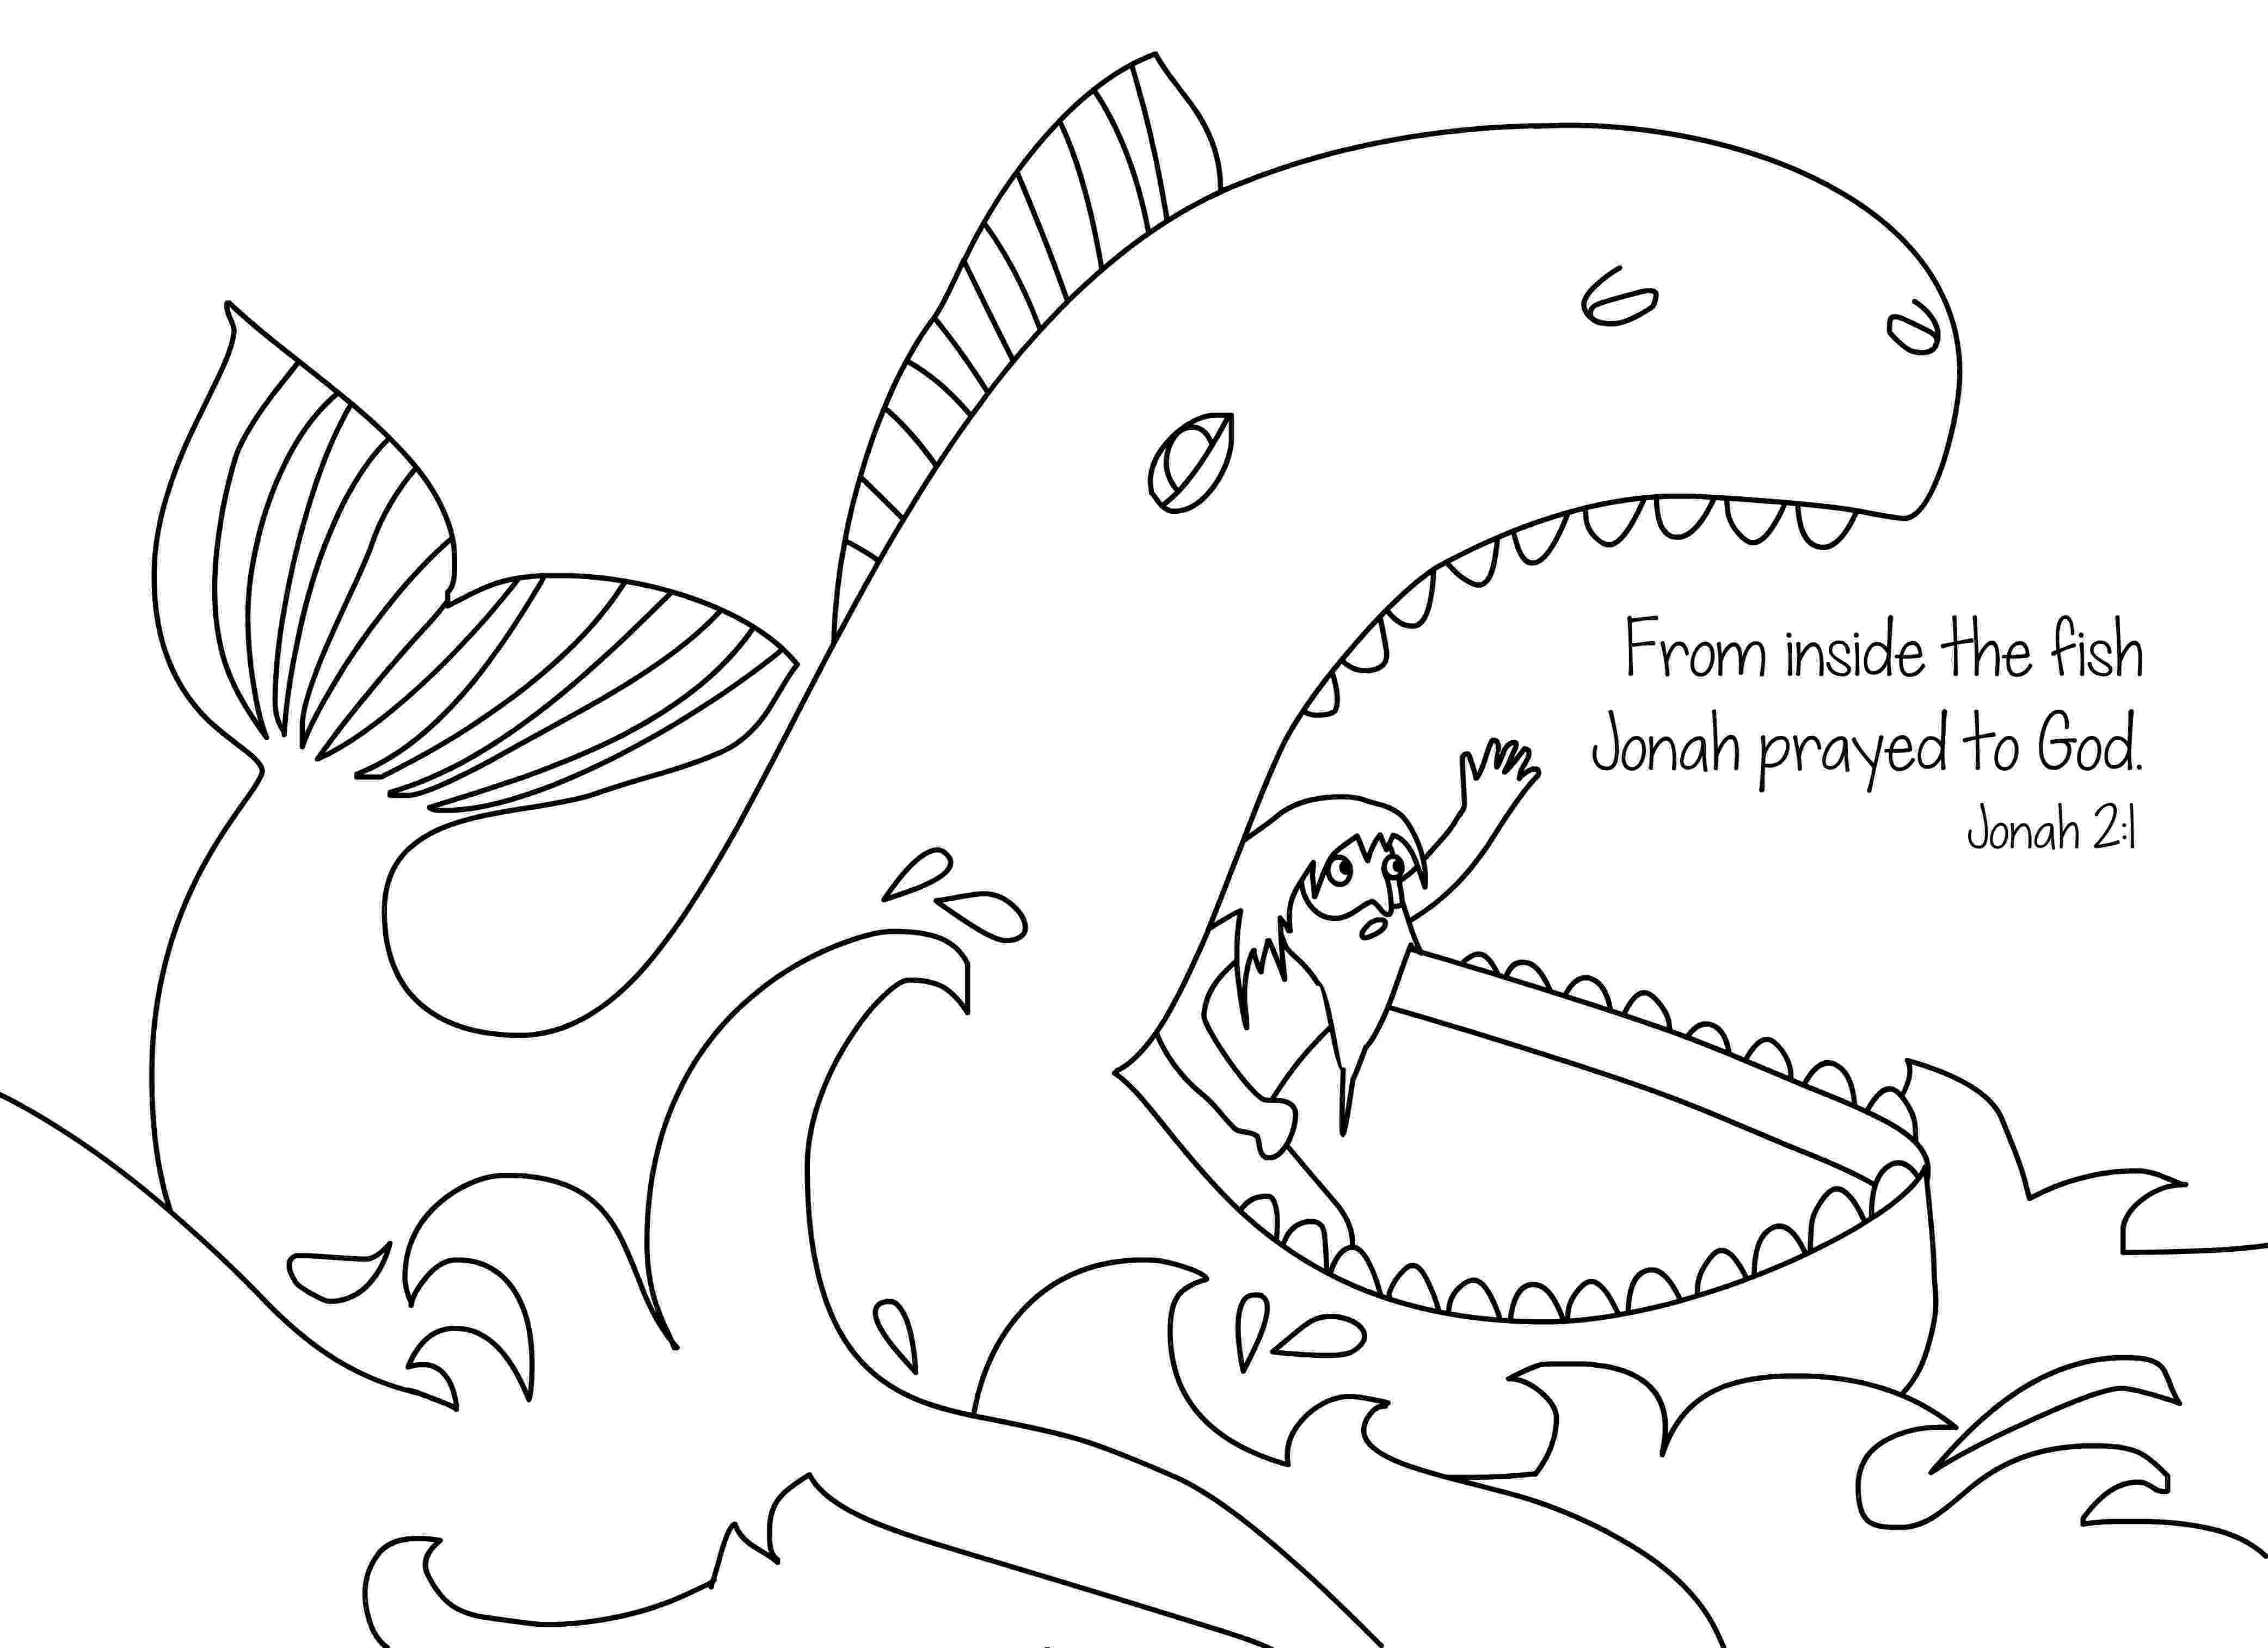 jonah and the whale coloring page jonah and the whale by cori ann coloring page jonah the whale and